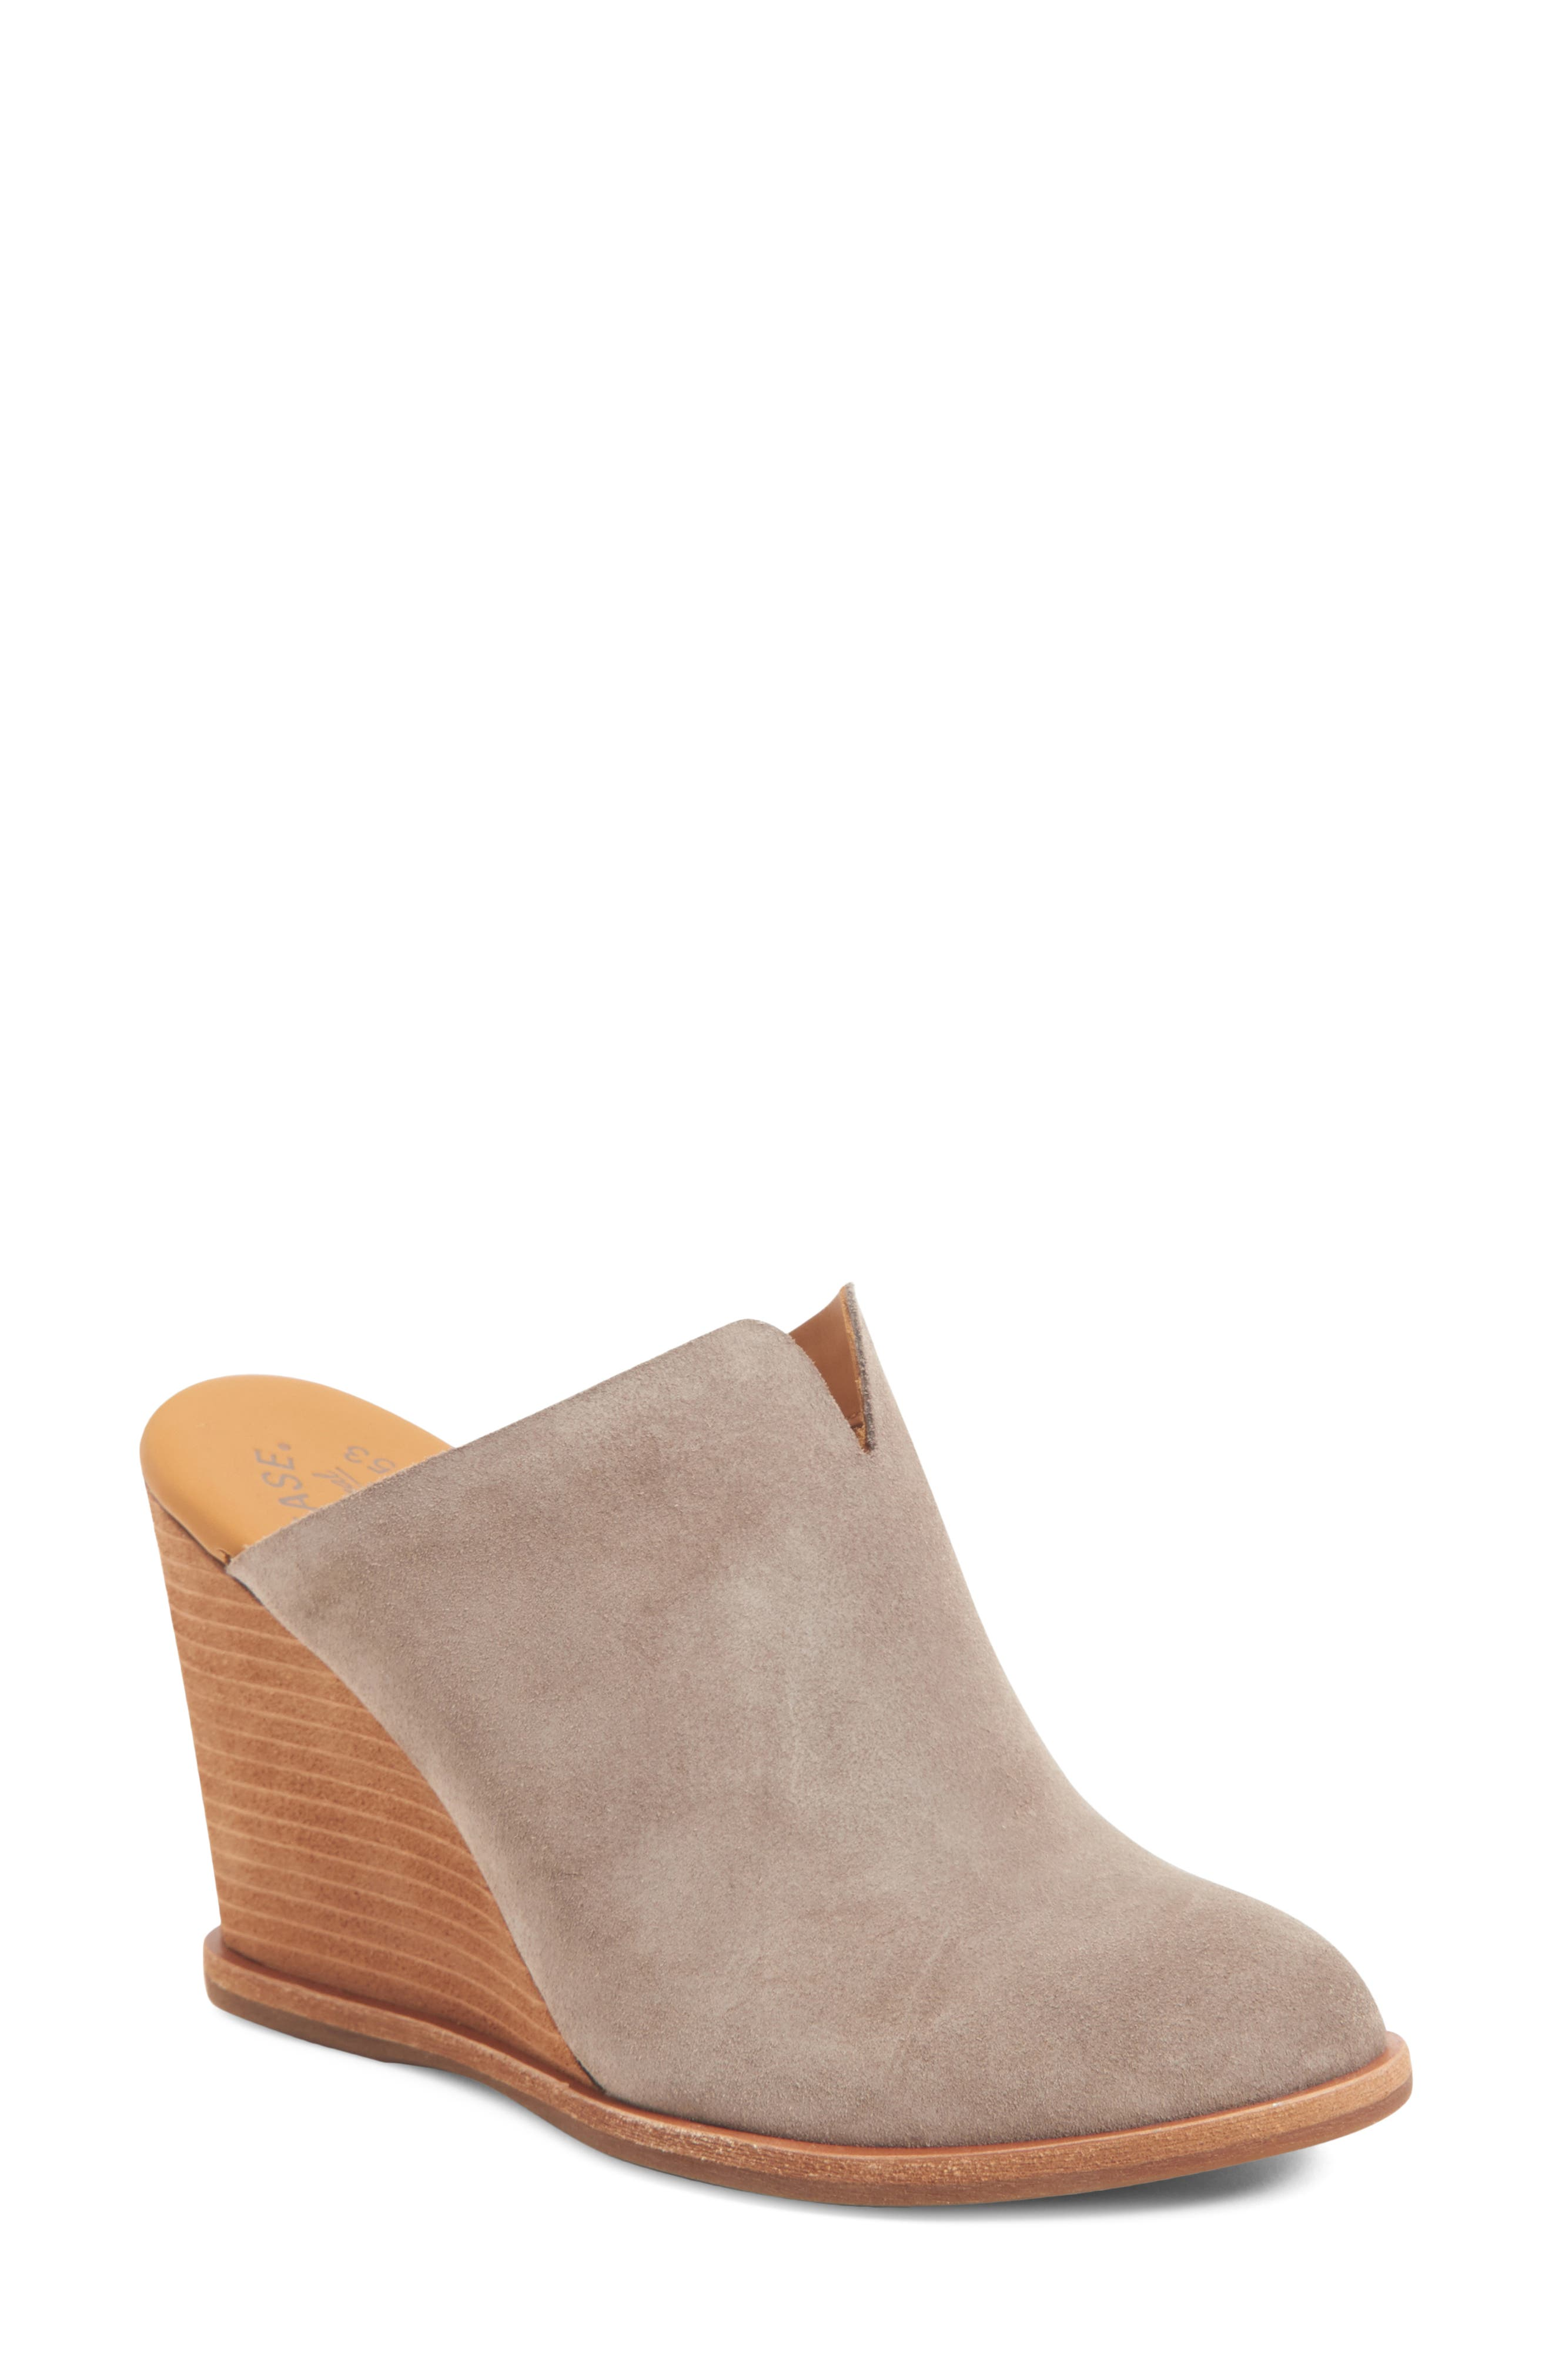 A tall stacked wedge brings eye-catching height to a stylish mule with a notched topline and well-cushioned footbed. Style Name: Kork-Ease Lanka Wedge Mule (Women). Style Number: 6092073. Available in stores.